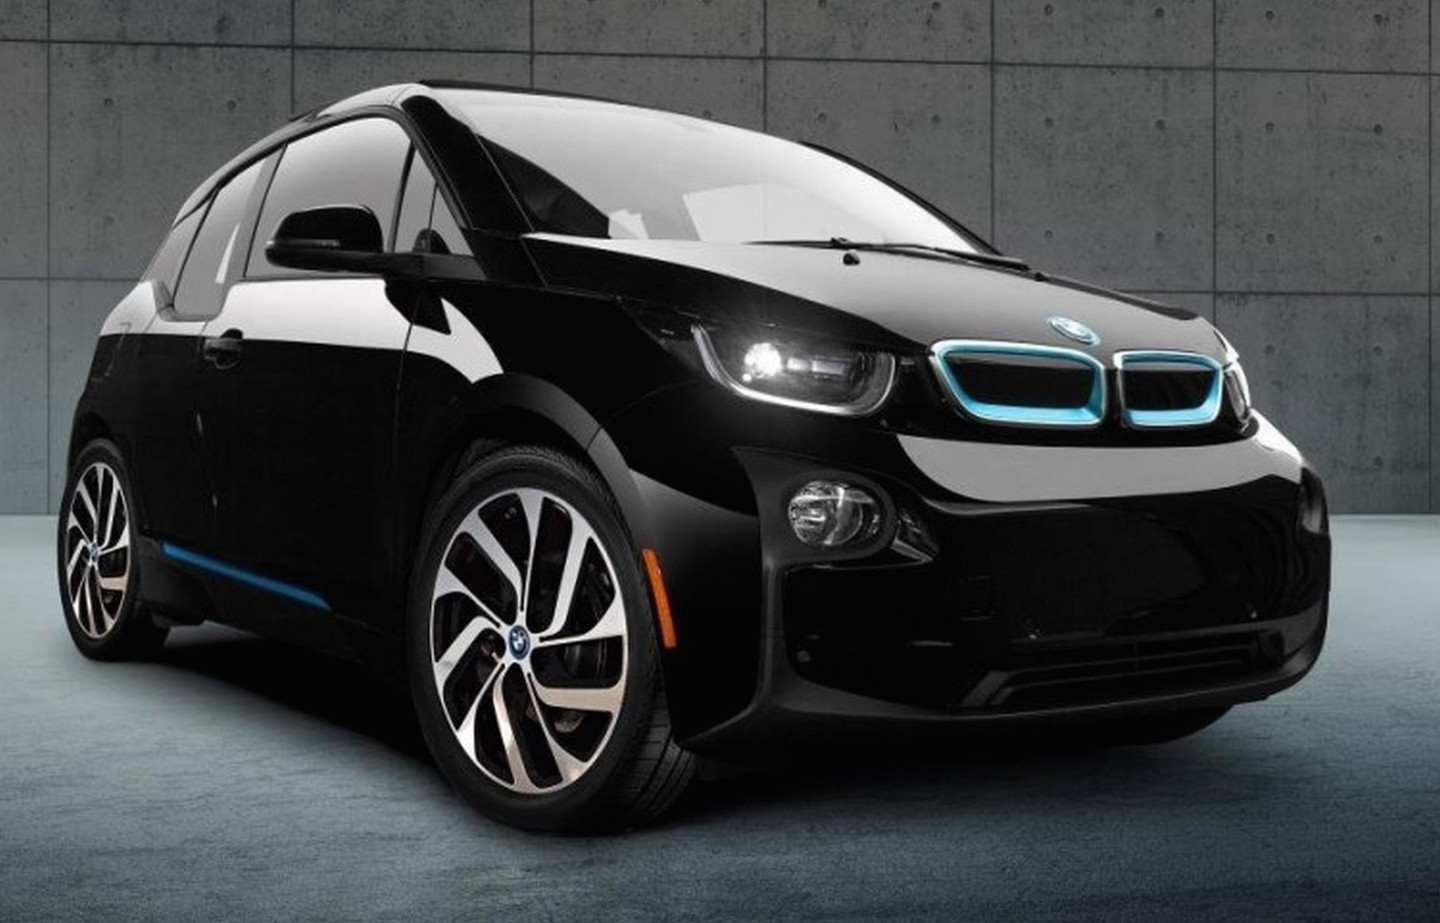 bmw i3 shadow sport special edition revealed performancedrive. Black Bedroom Furniture Sets. Home Design Ideas